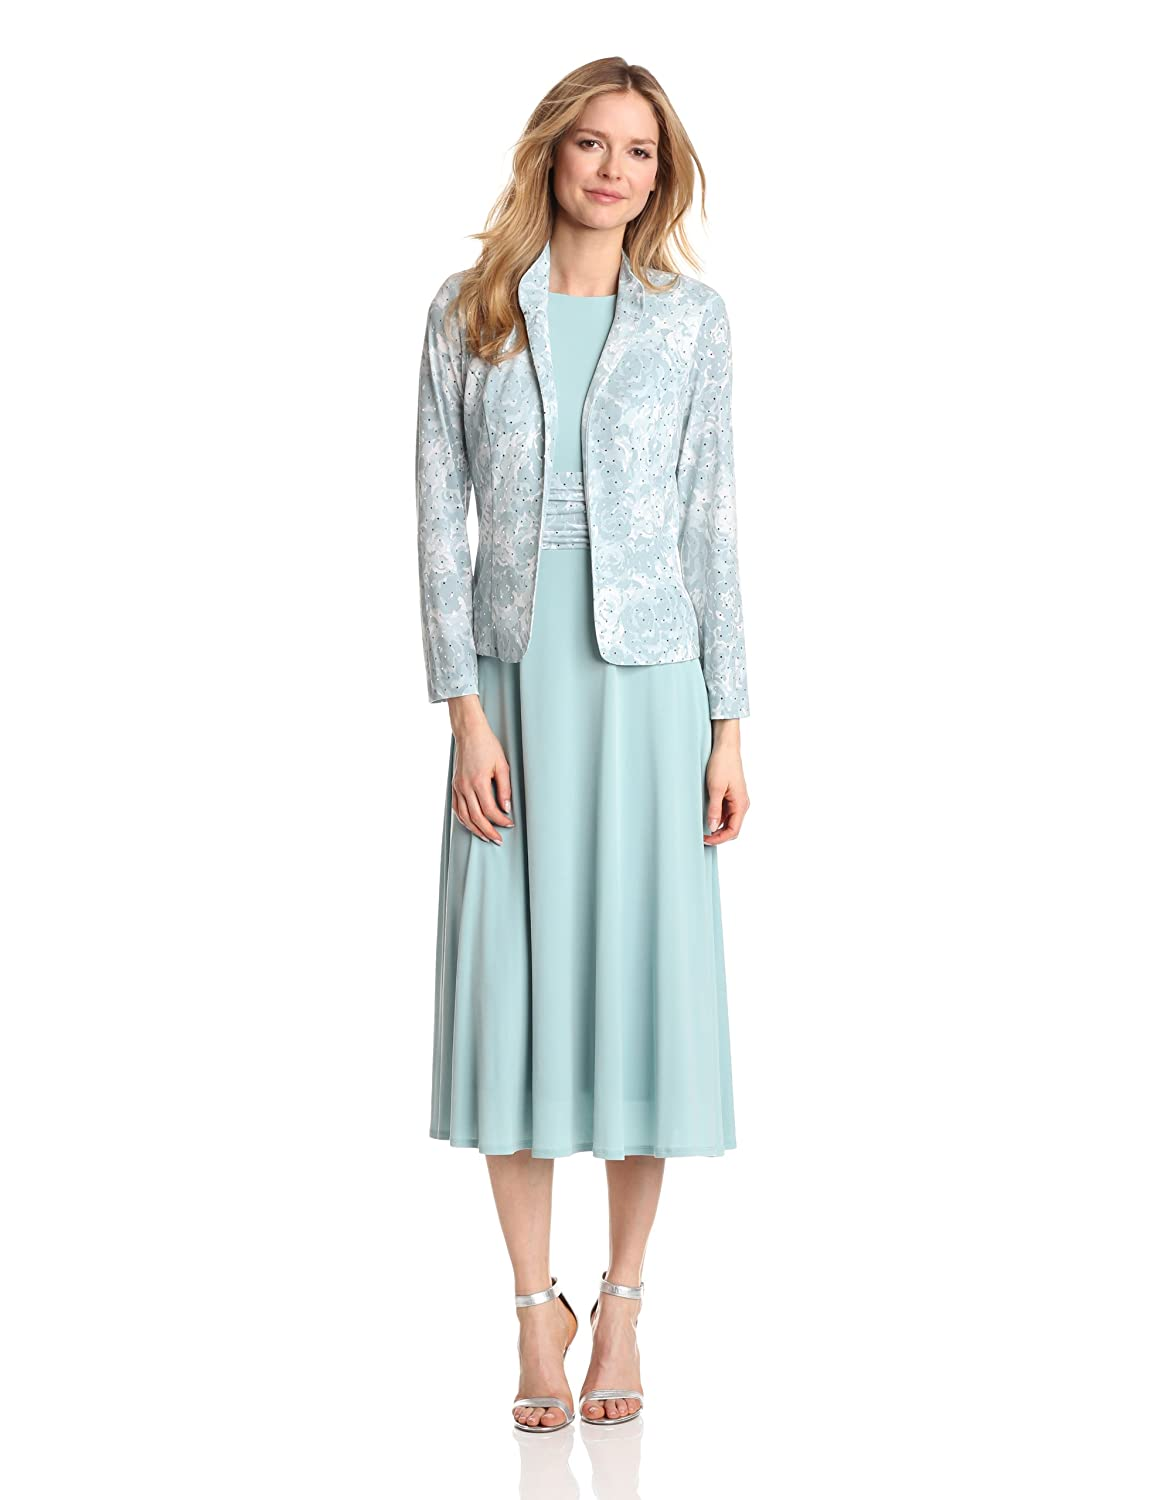 Beautiful Jacket Dress To Create A Statuesque Silhouette With Heels Dresses